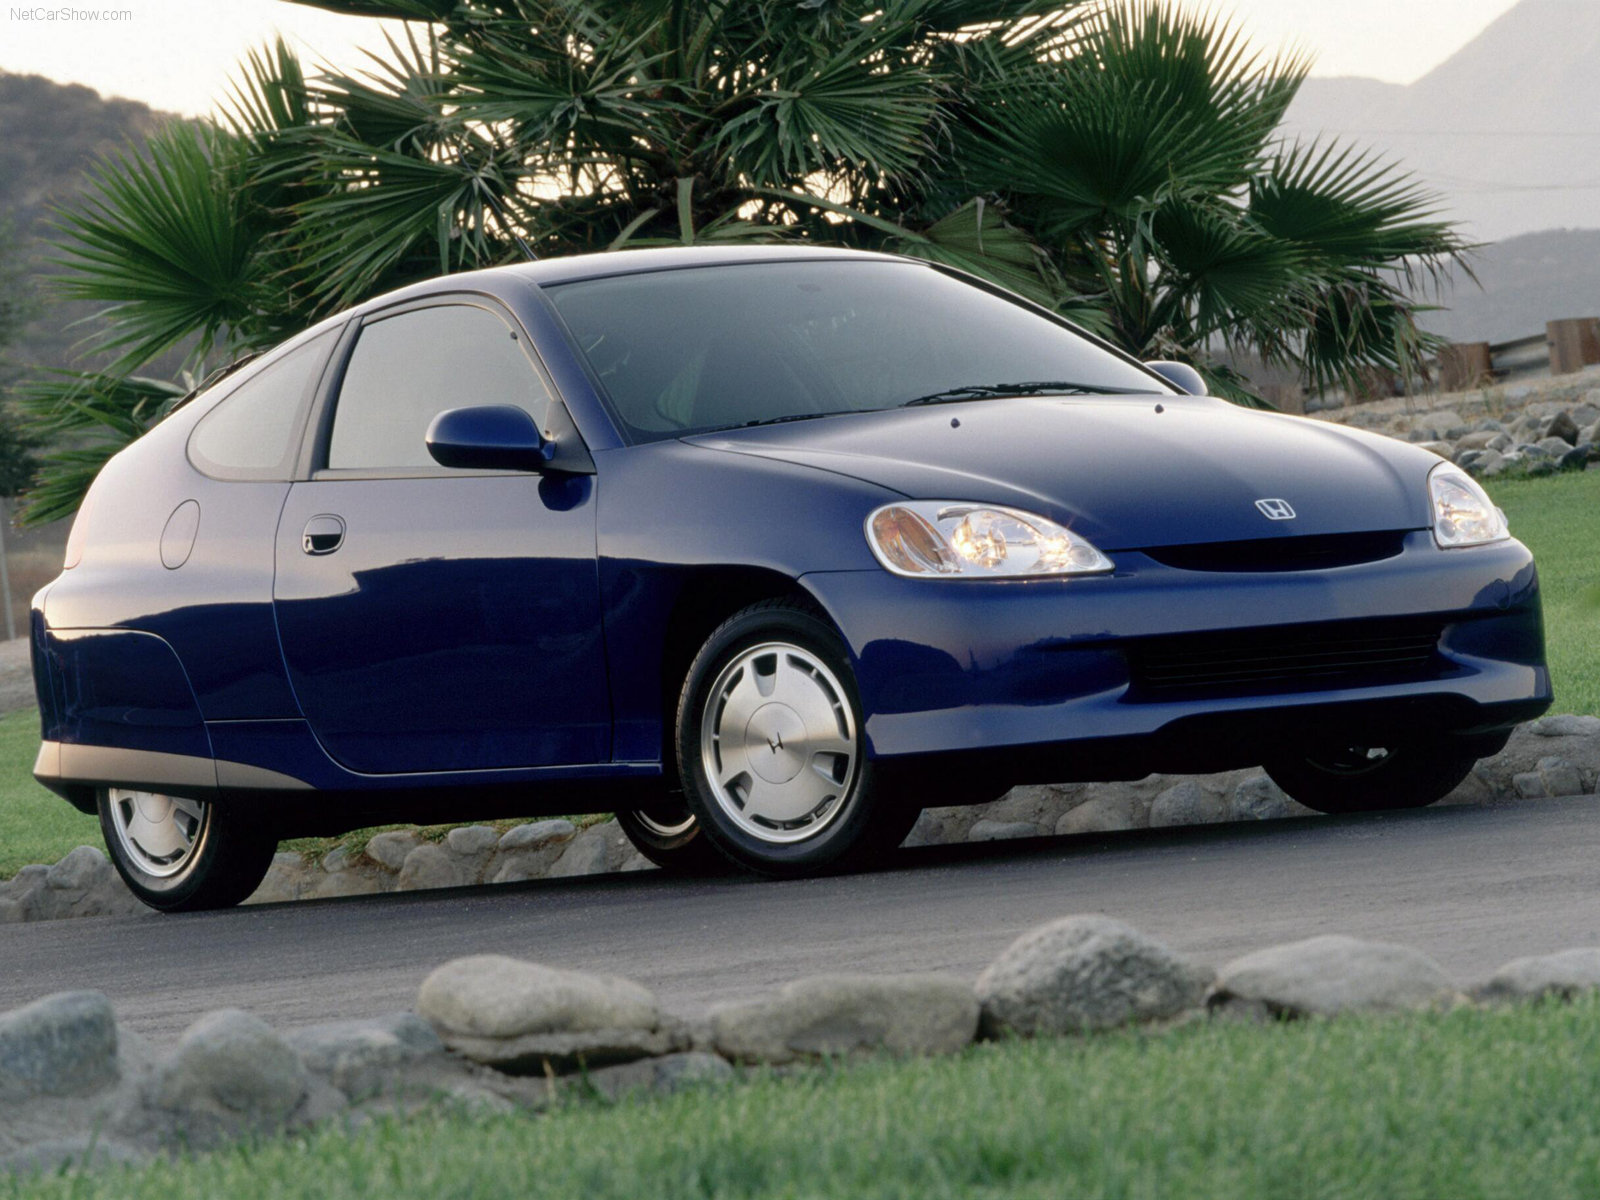 2000 Honda Insight Front 3/4